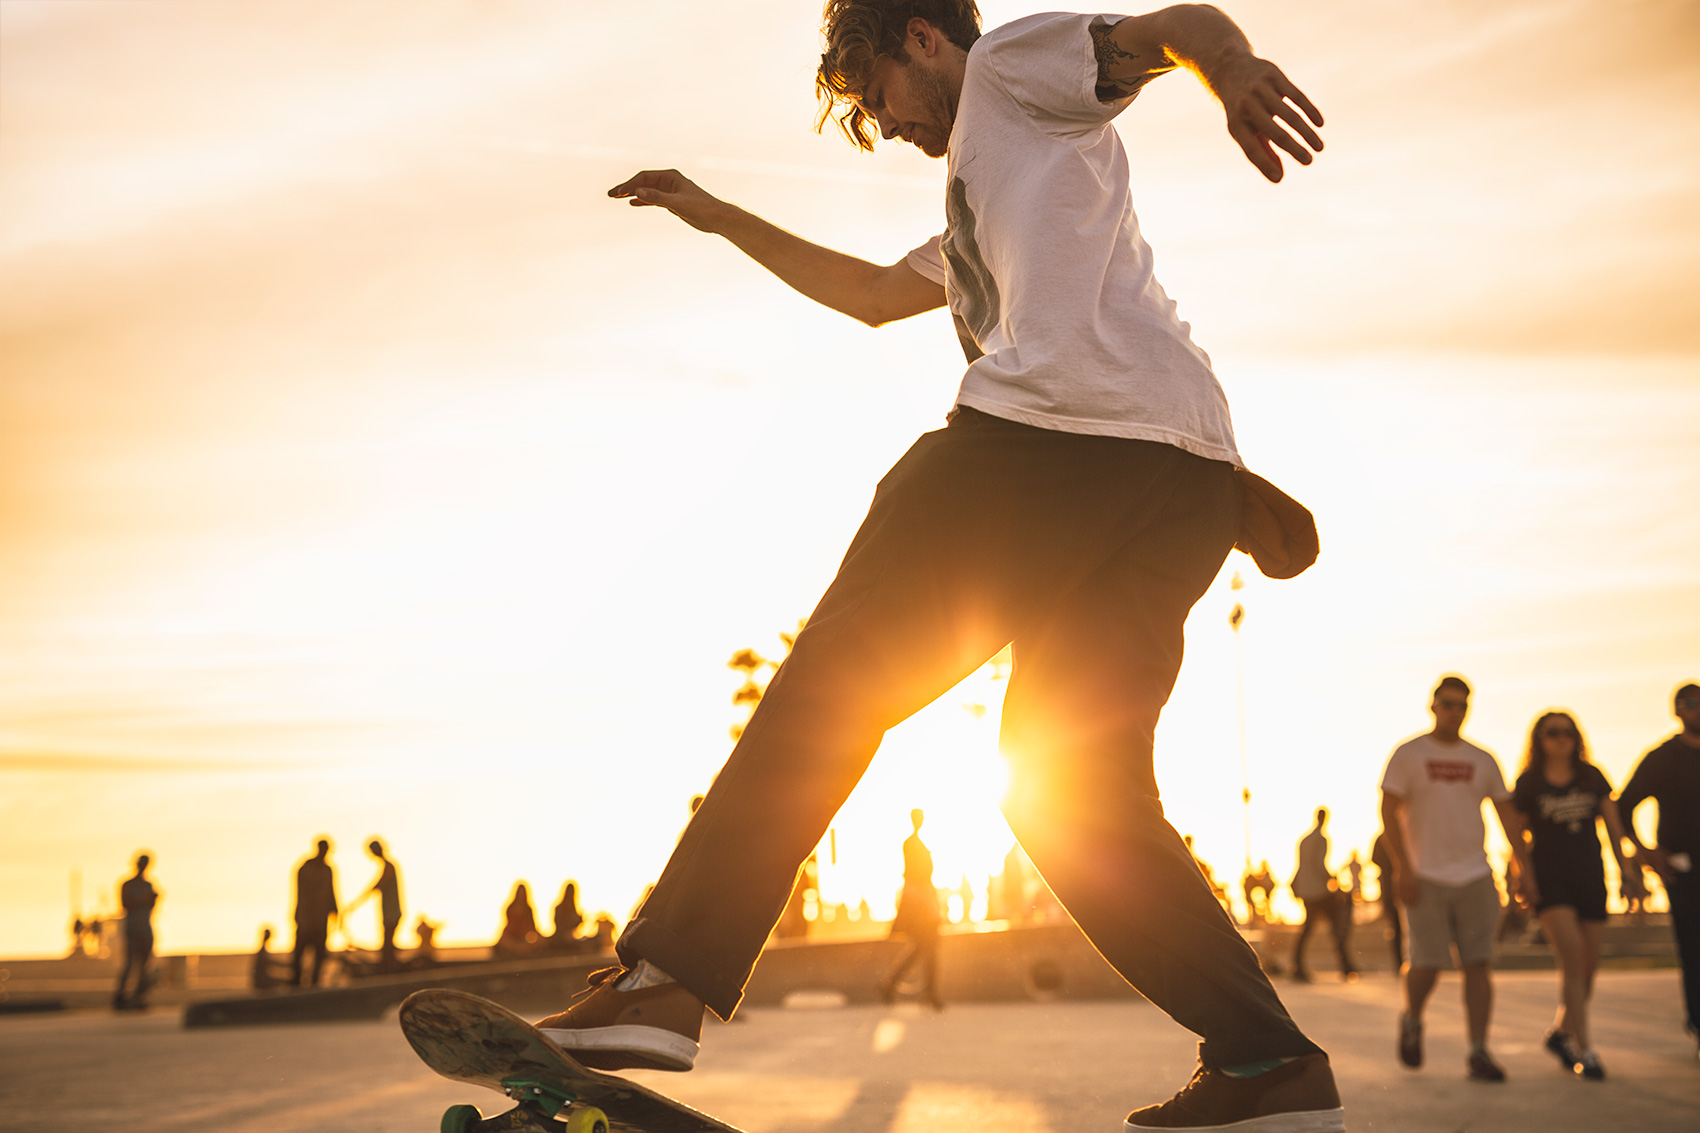 Venice Boardwalk and Skateboarder at Sunset